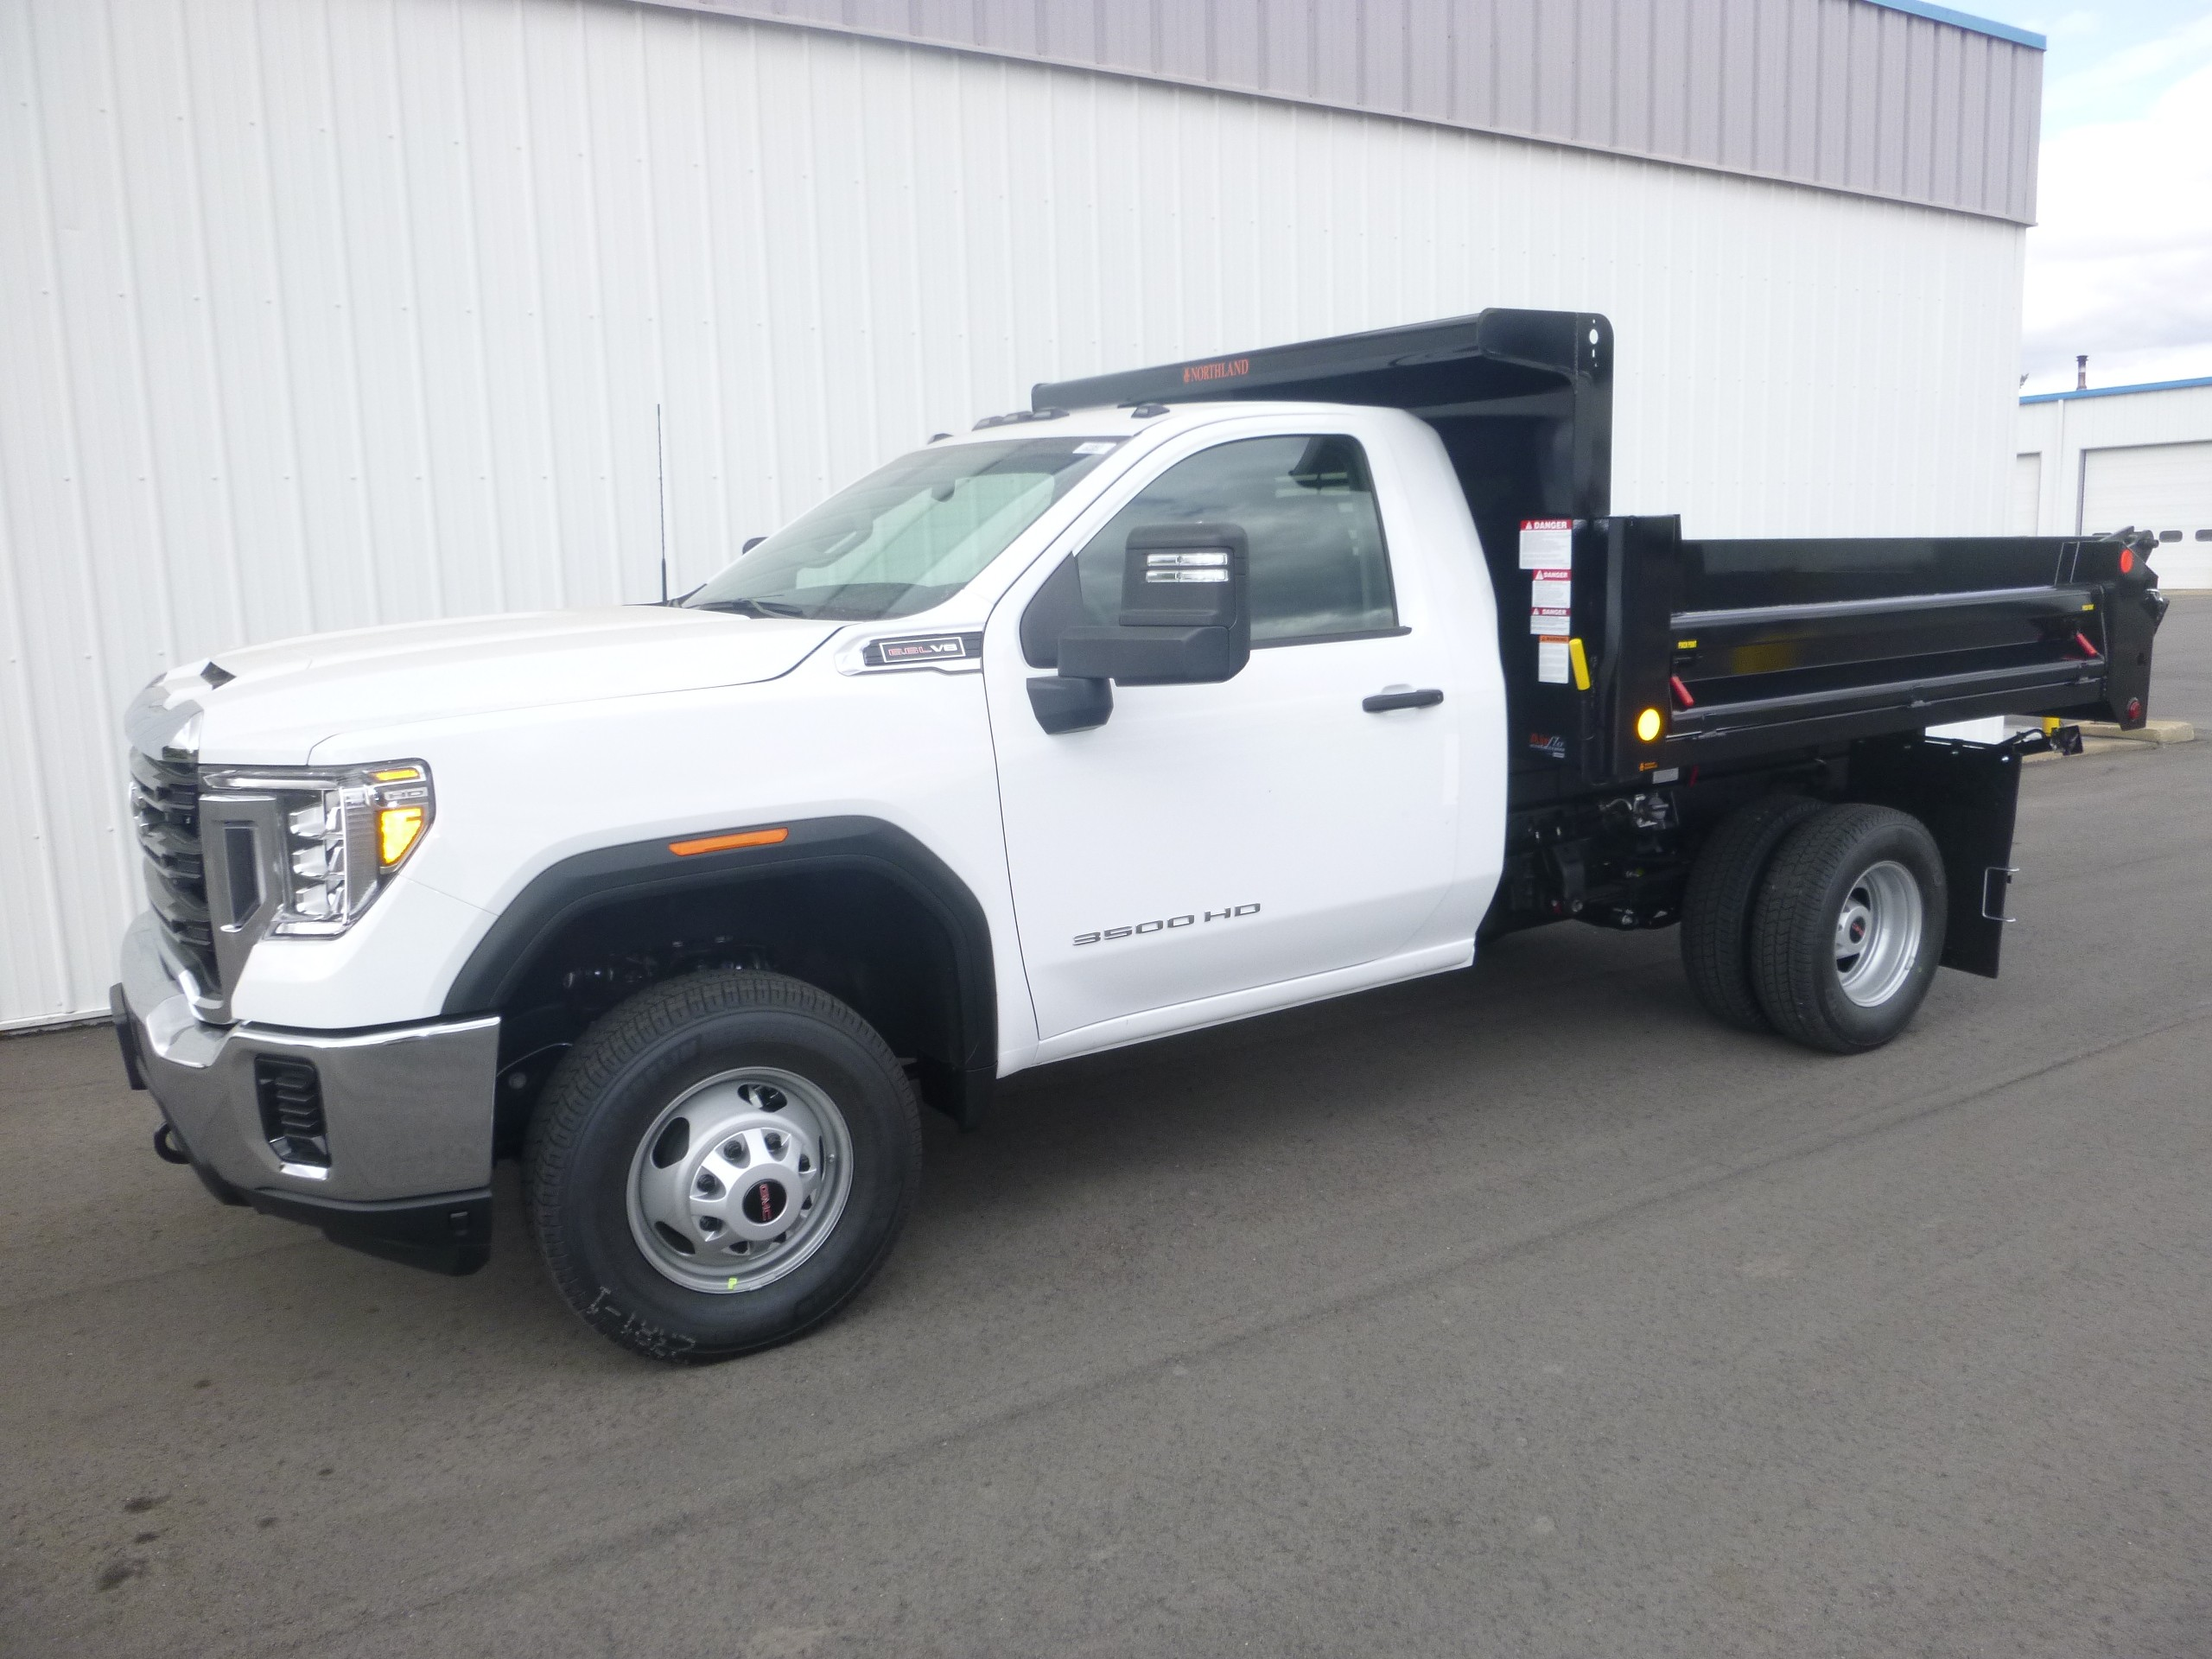 New, 2021, GMC, Sierra 3500HD 4X4, Cab / Chassis Trucks